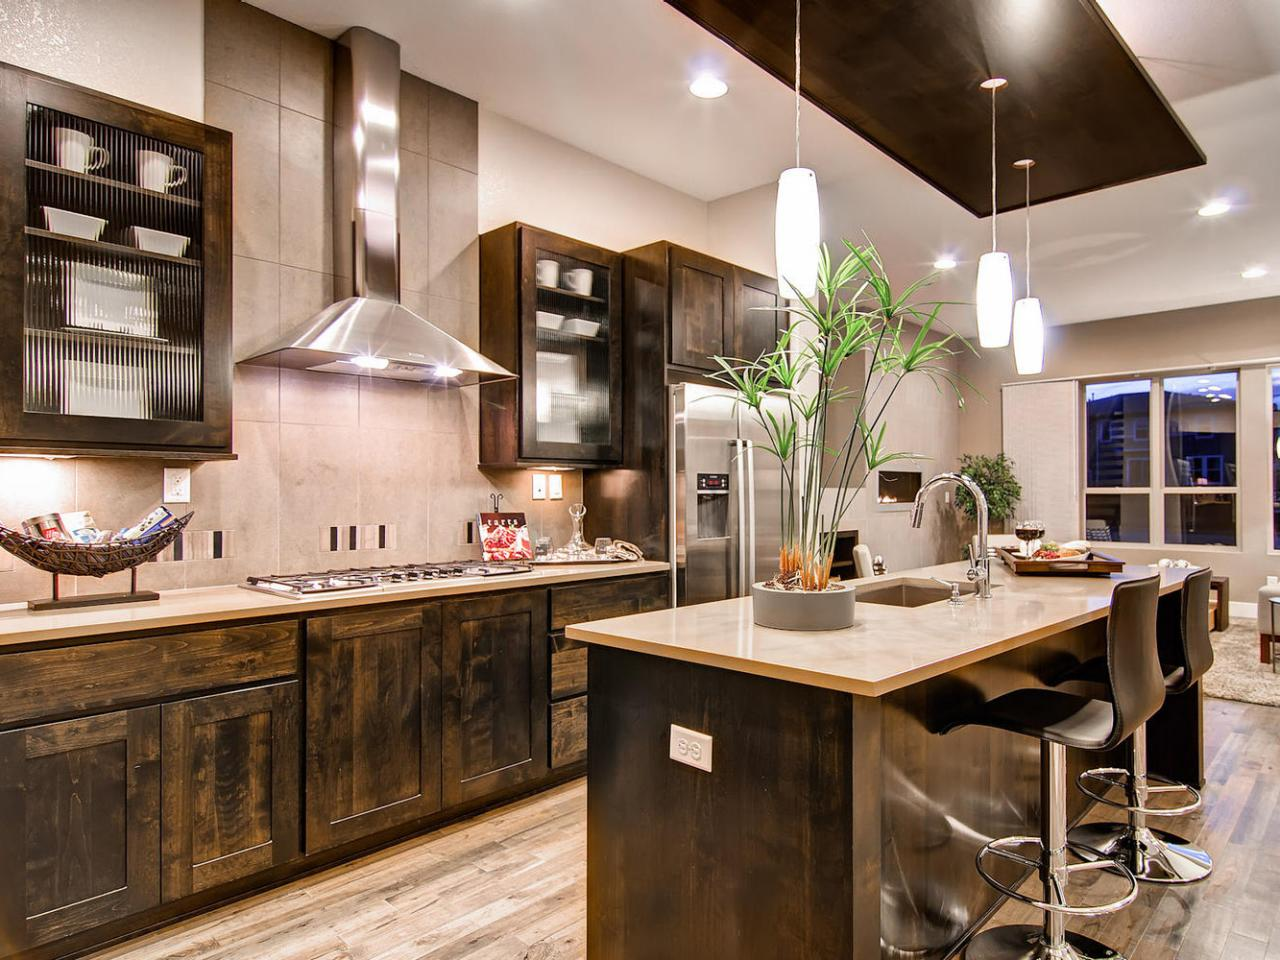 Get A Super Functional Kitchen With Our 6 Tips